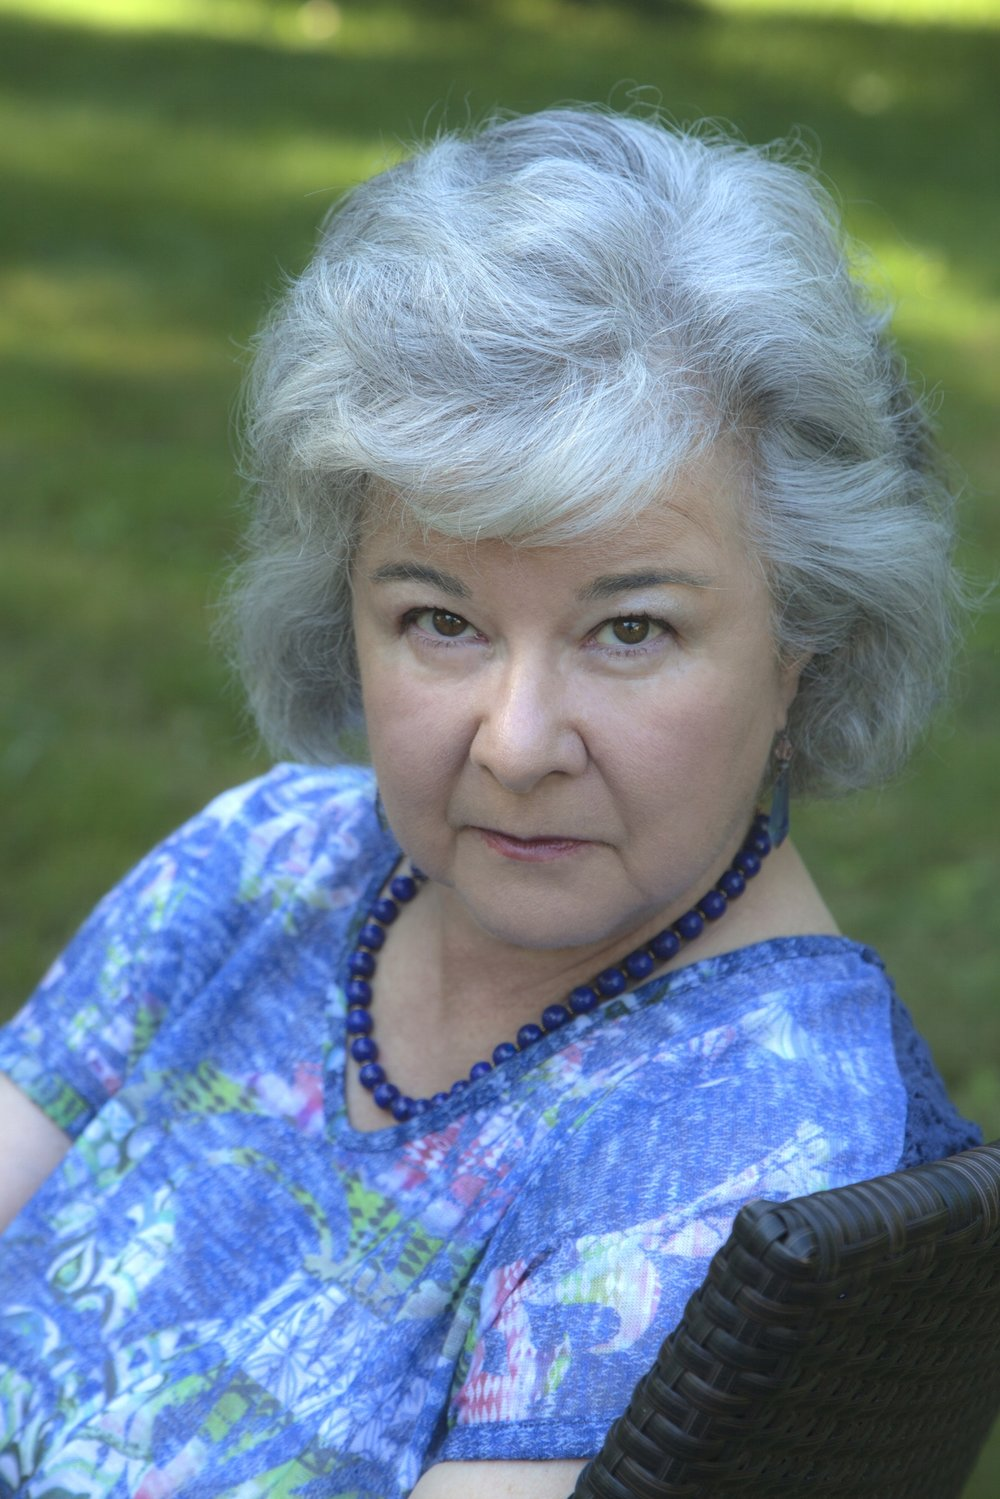 "Marianne Gambaro  describes herself as ""a recovering journalist."" After a career in news writing and public relations for a nonprofit organization, she now writes for love of the word. In addition to her first chapbook, Do NOT Stop for Hitchhikers, published in Spring 2018 by Finishing Line Press, her work has been published in print and online by several literary journals including  The Aurorean, Oberon Poetry Magazine, Pirene's Fountain, Avocet Journal, Snowy Egret  and  The Naugatuck River Review.  She lives and writes not far from the home of Emily Dickinson, in Massachusetts' verdant Pioneer Valley with her husband Jim, a fine art photographer, and three feline companions."